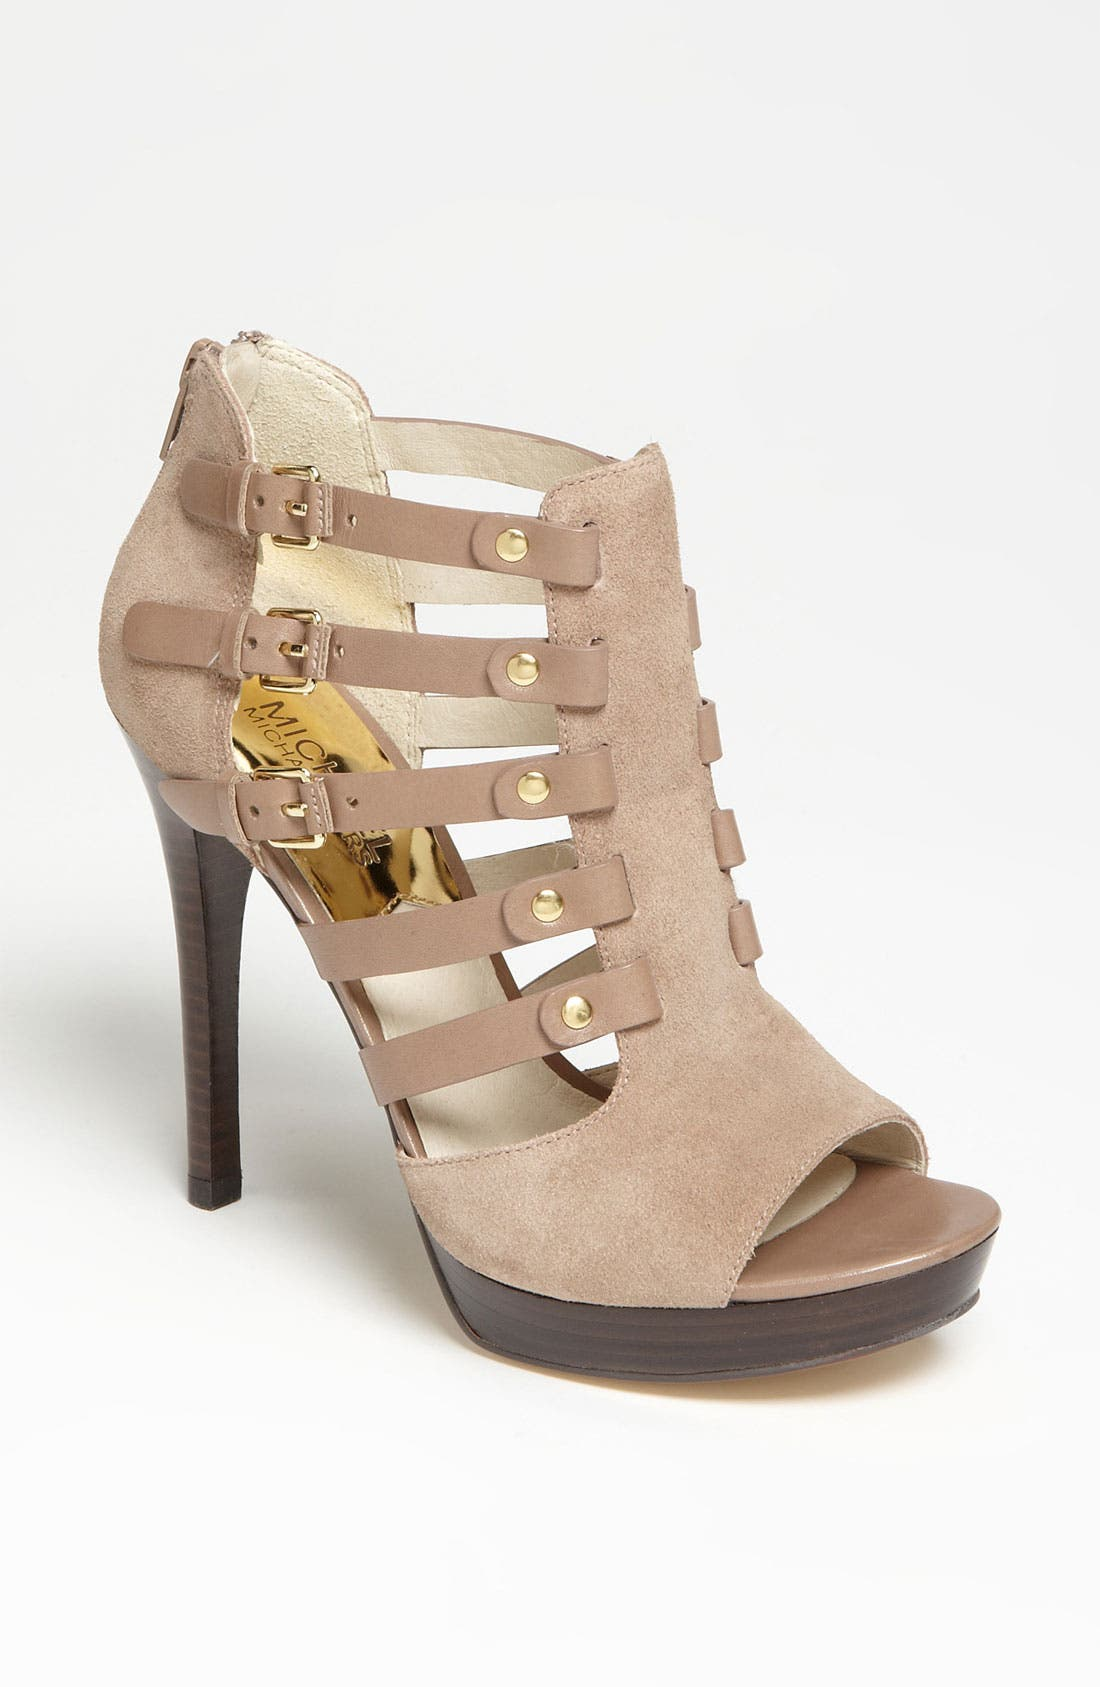 Alternate Image 1 Selected - MICHAEL Michael Kors 'Caelan' Sandal